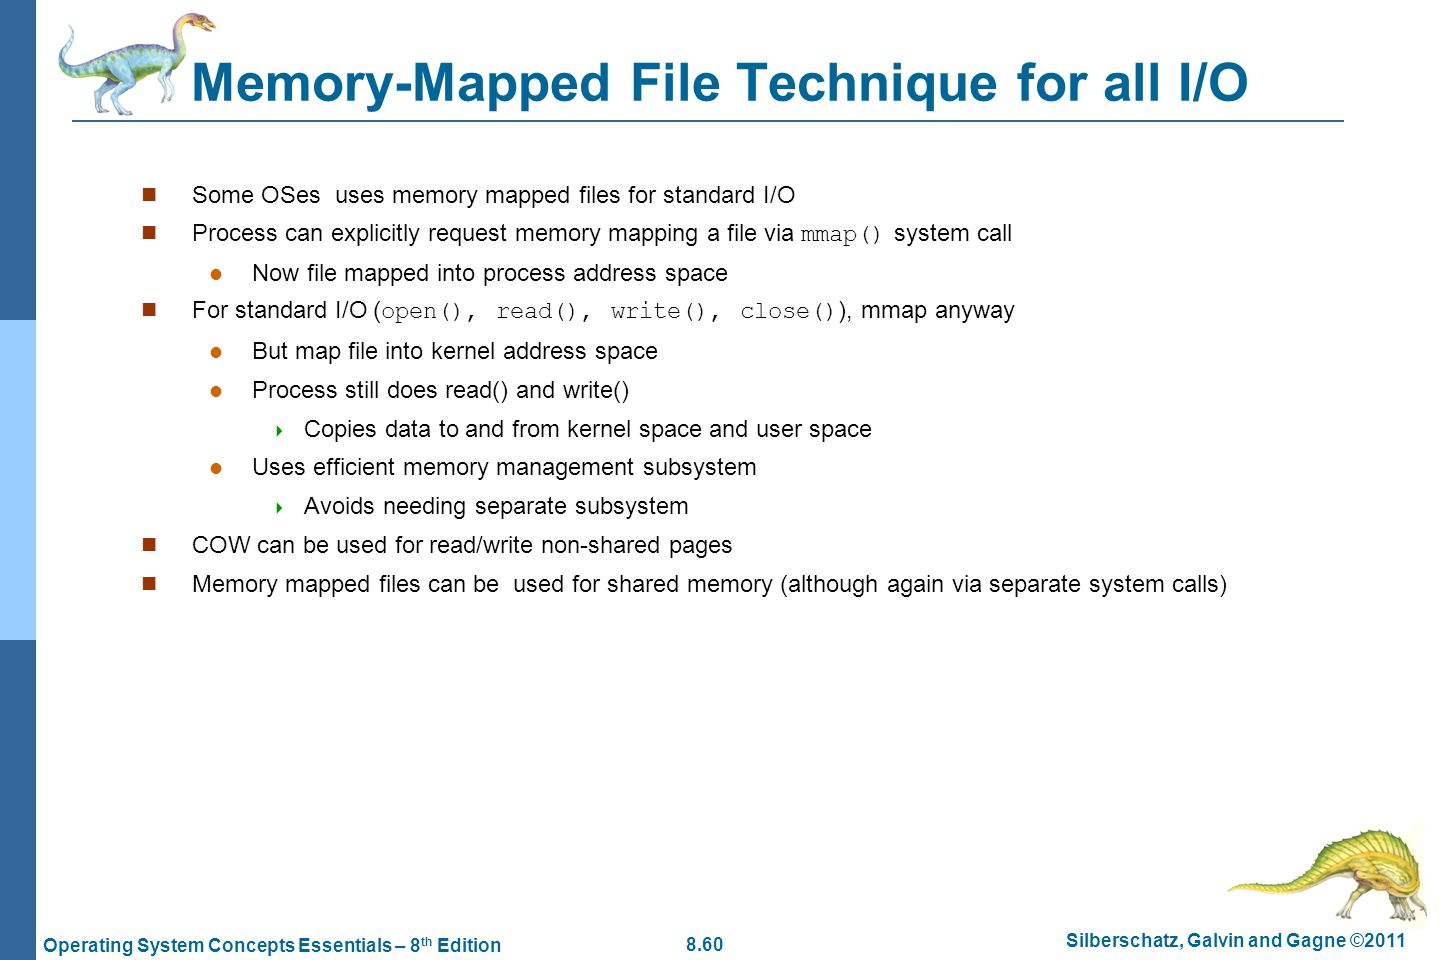 Memory-Mapped File Technique for all I/O